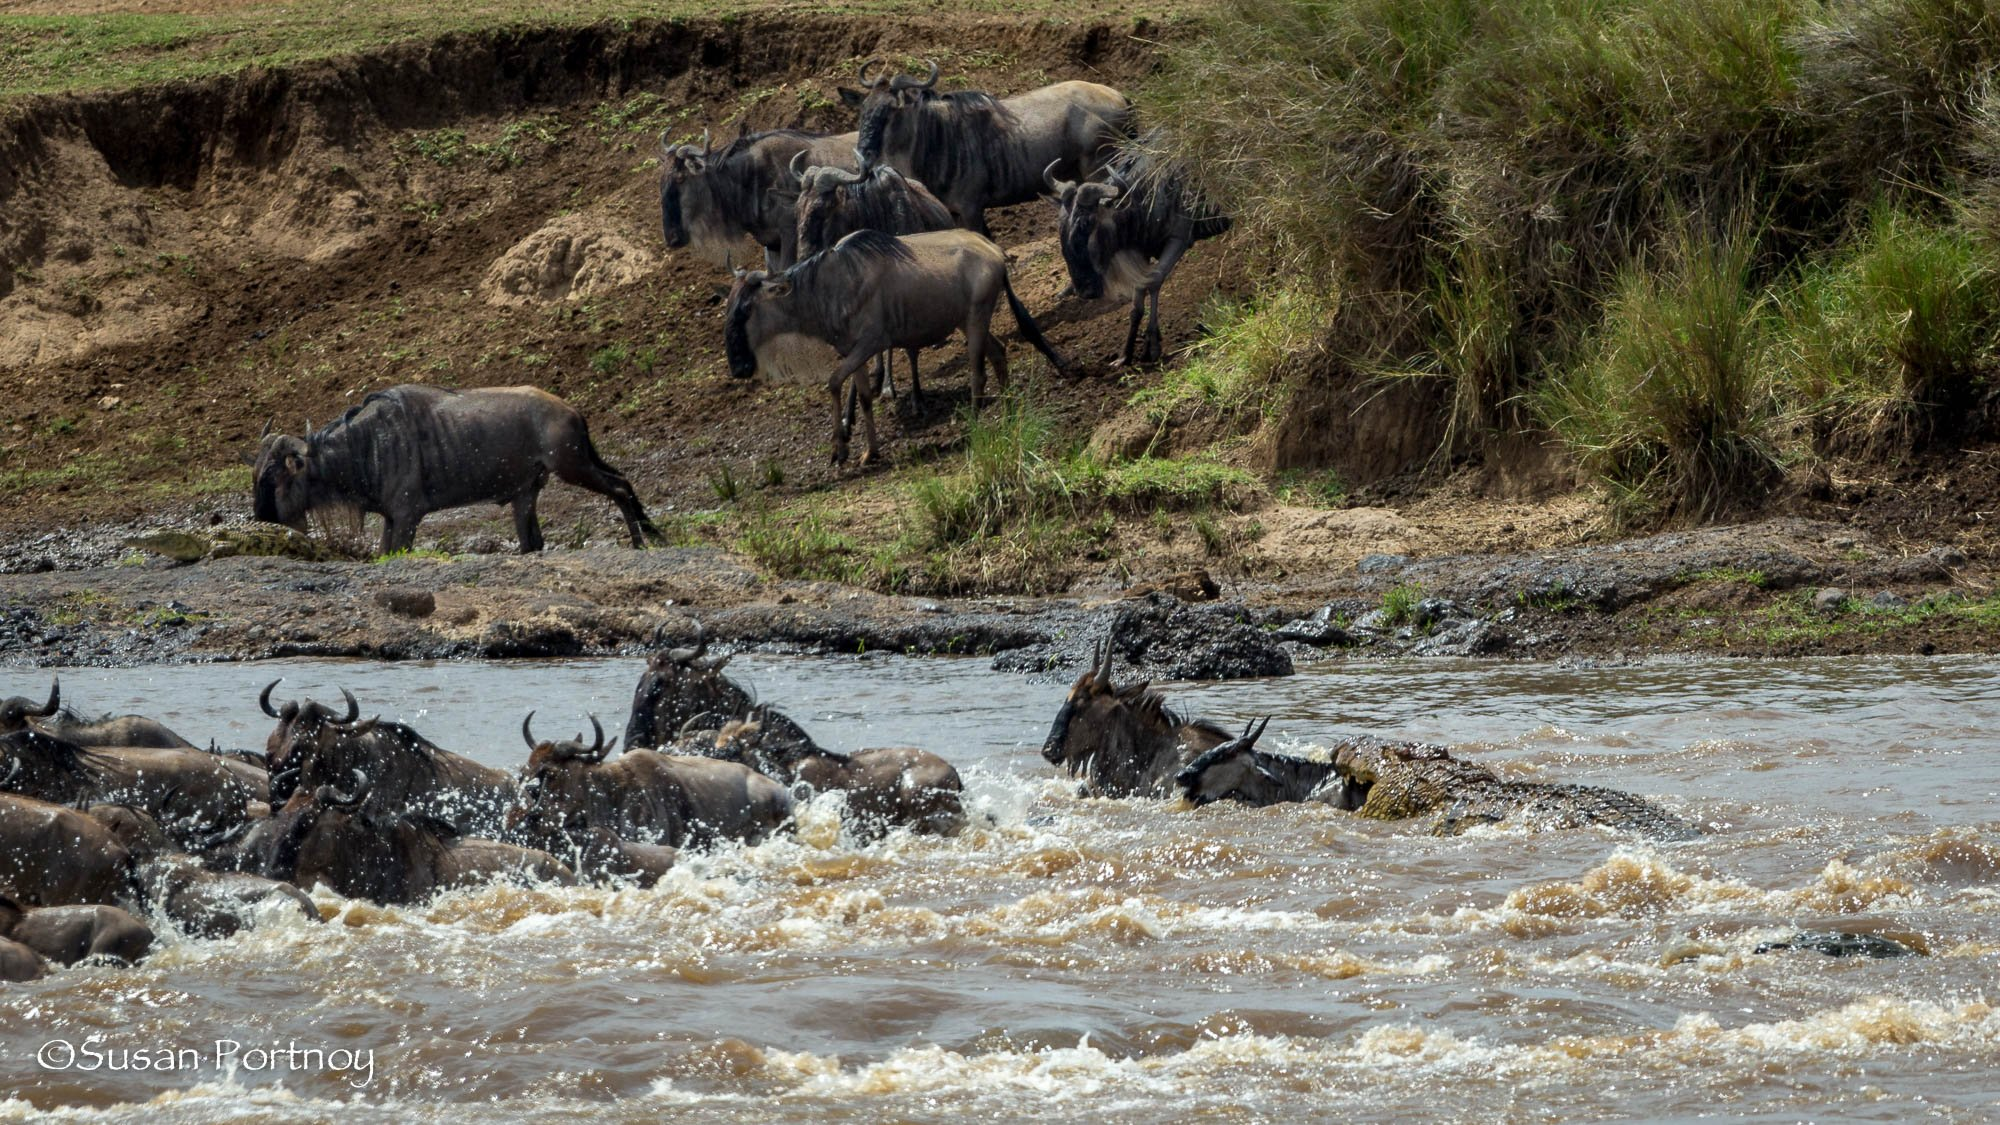 A crocodile attacks one of many wildebeest crossing a river in the Masai Mara.